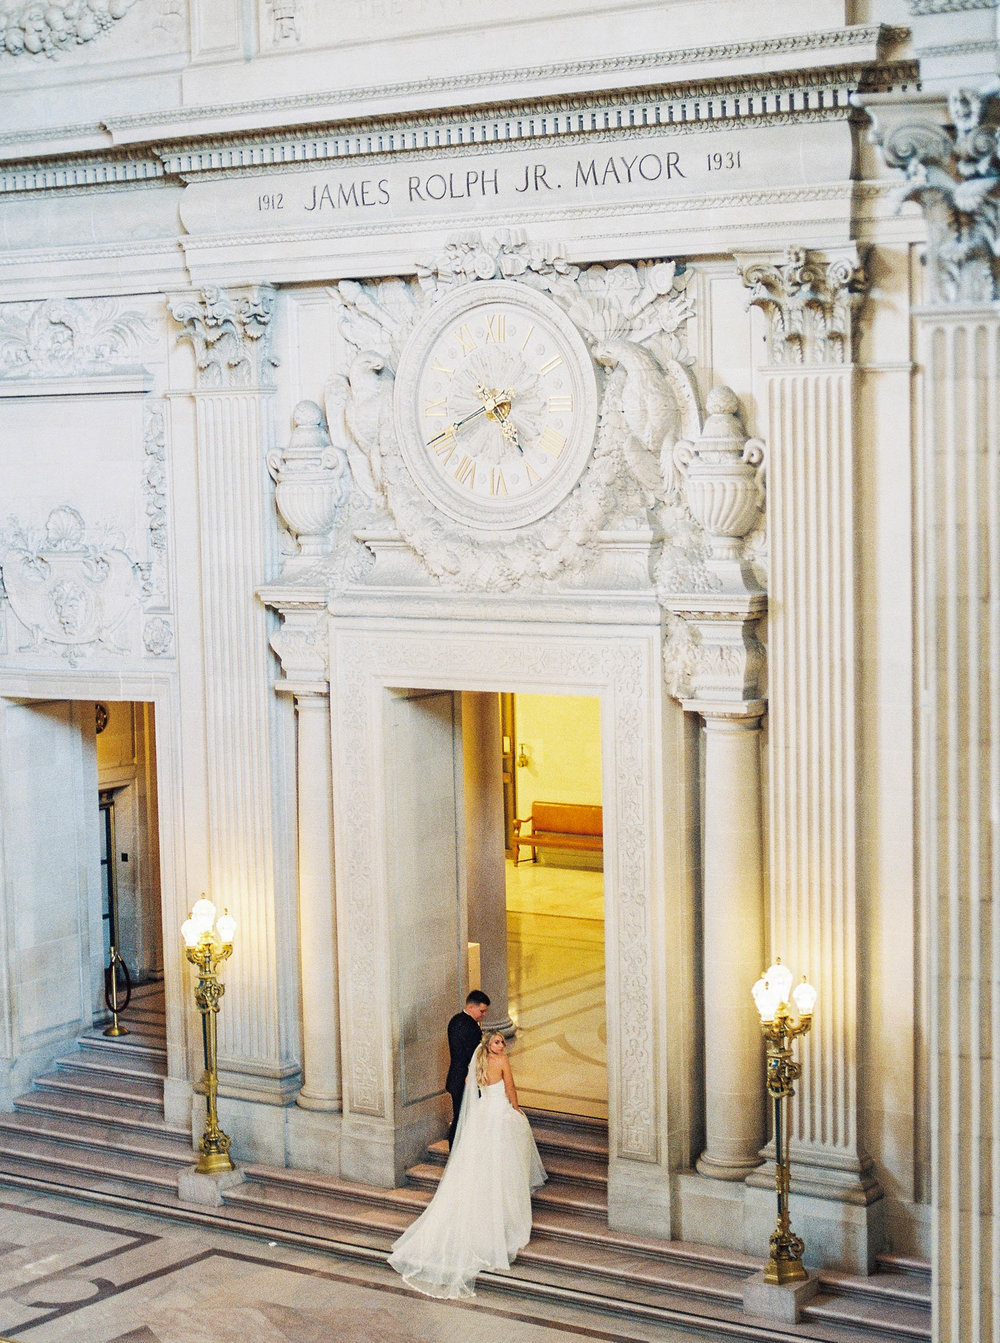 DennisRoyCoronel_Photography_SanFranciscoCityHall_Wedding-86.jpg